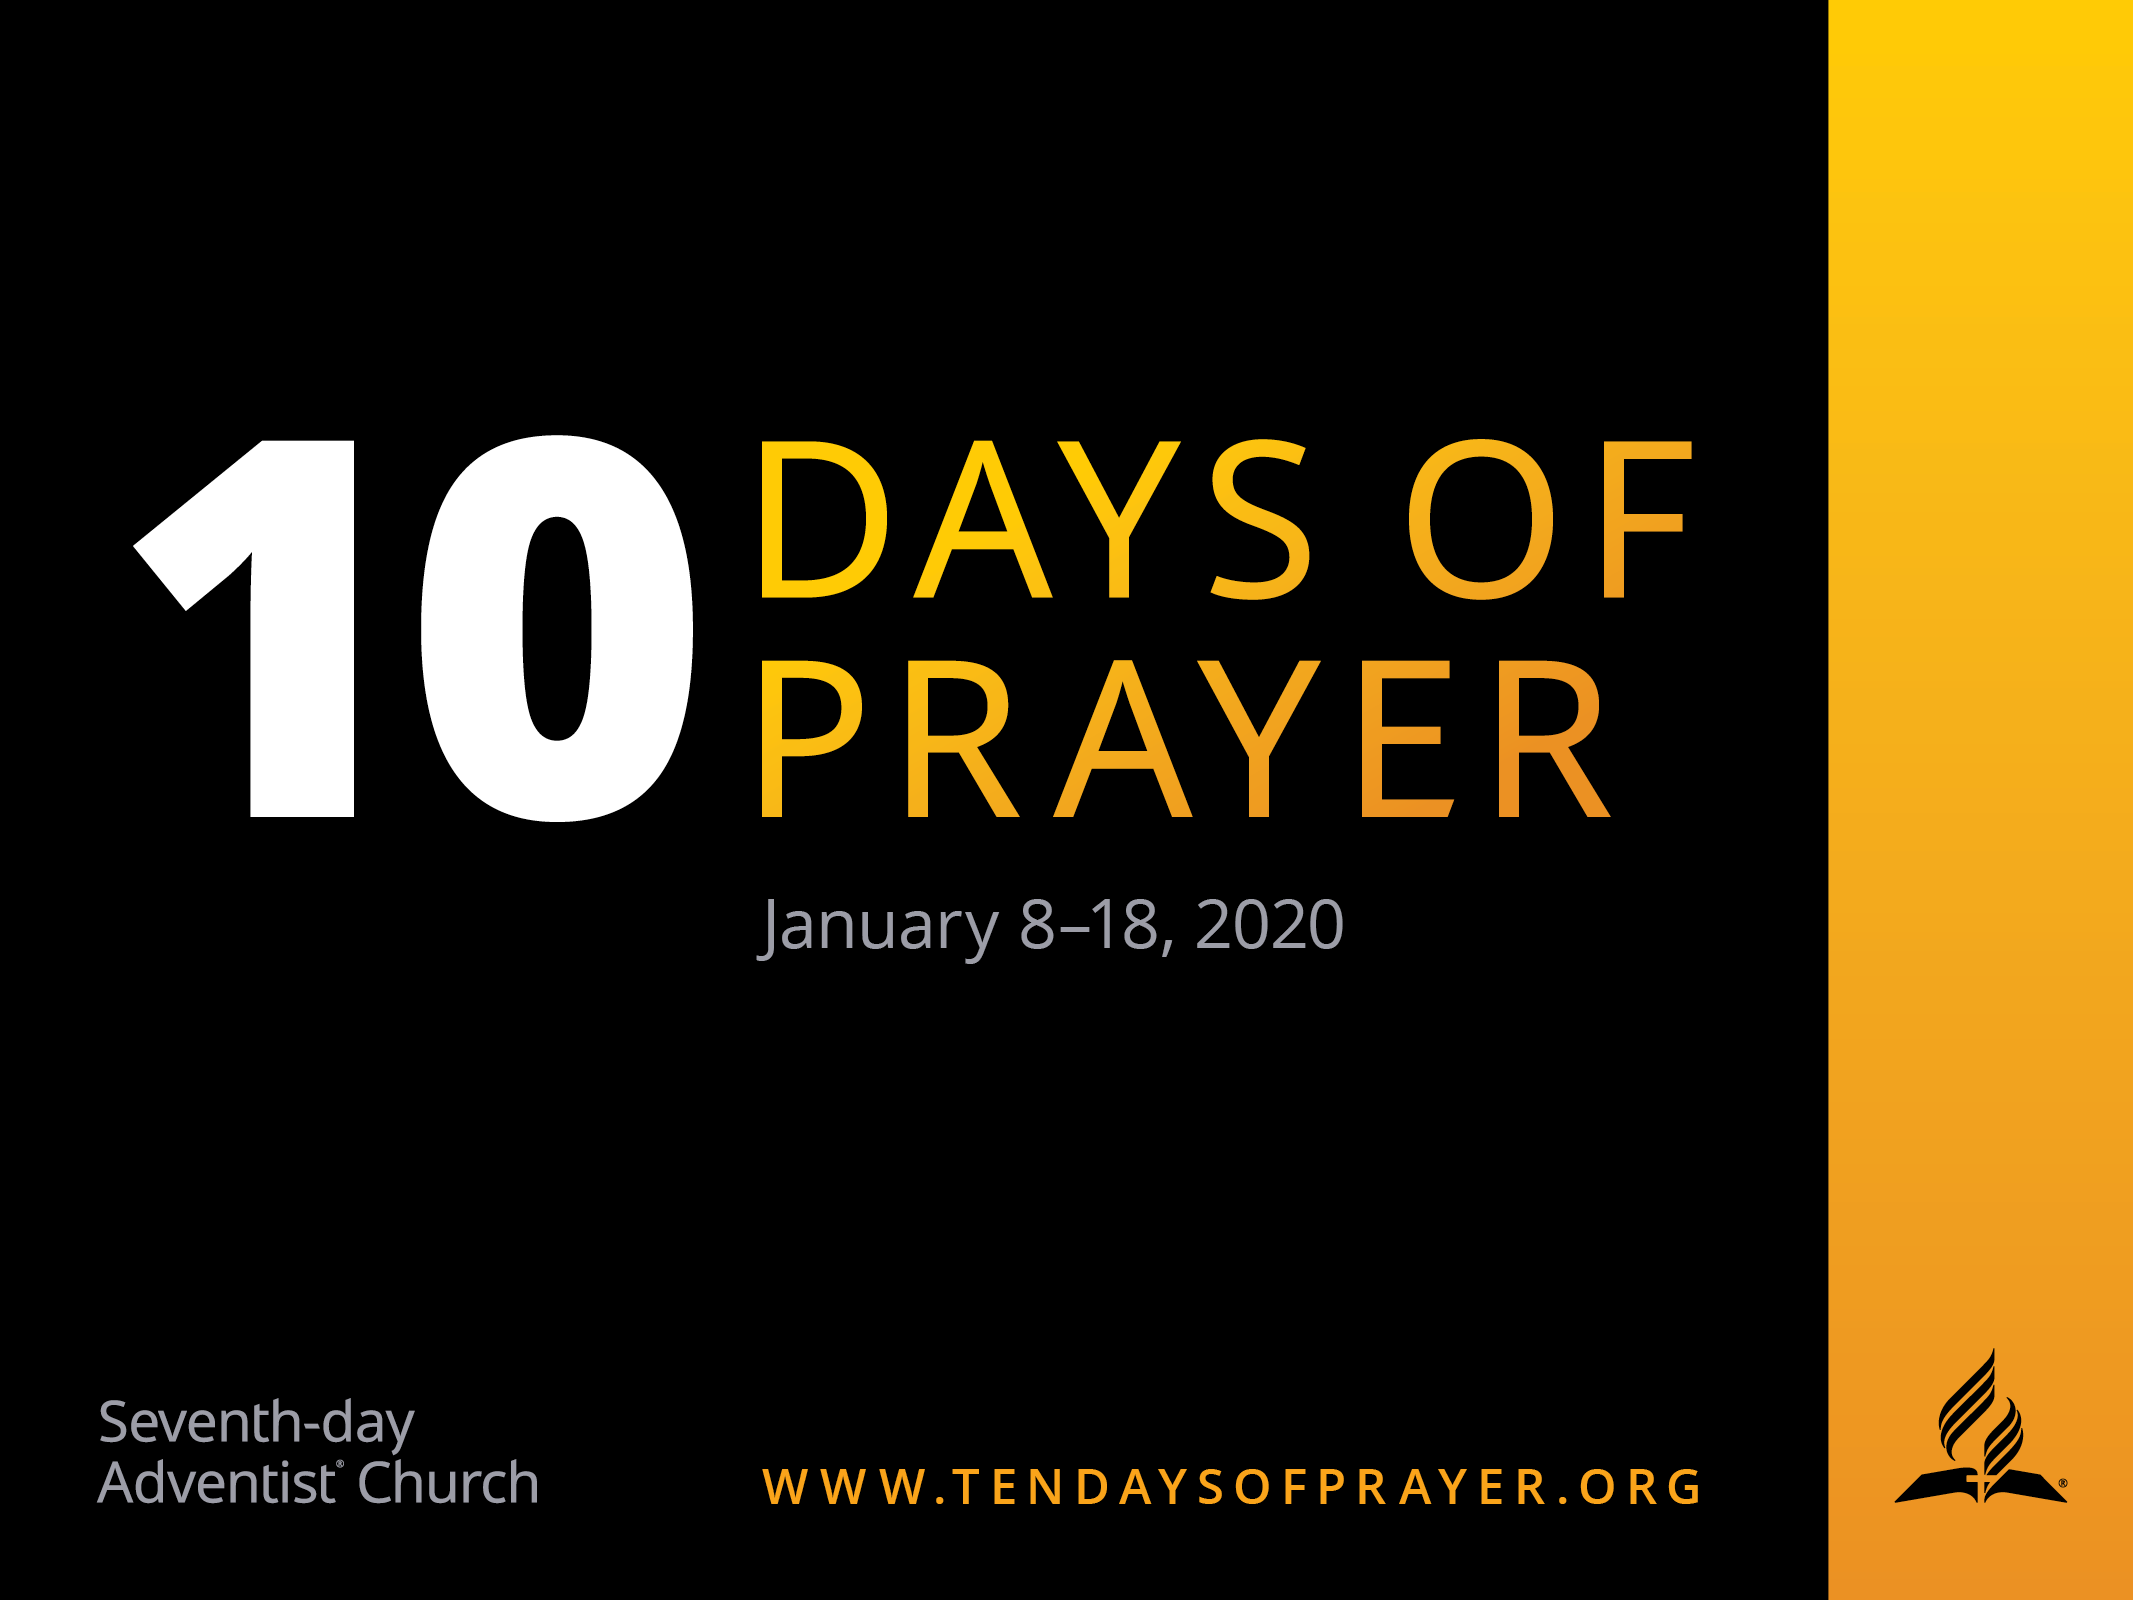 Ten Days of Prayer 2020